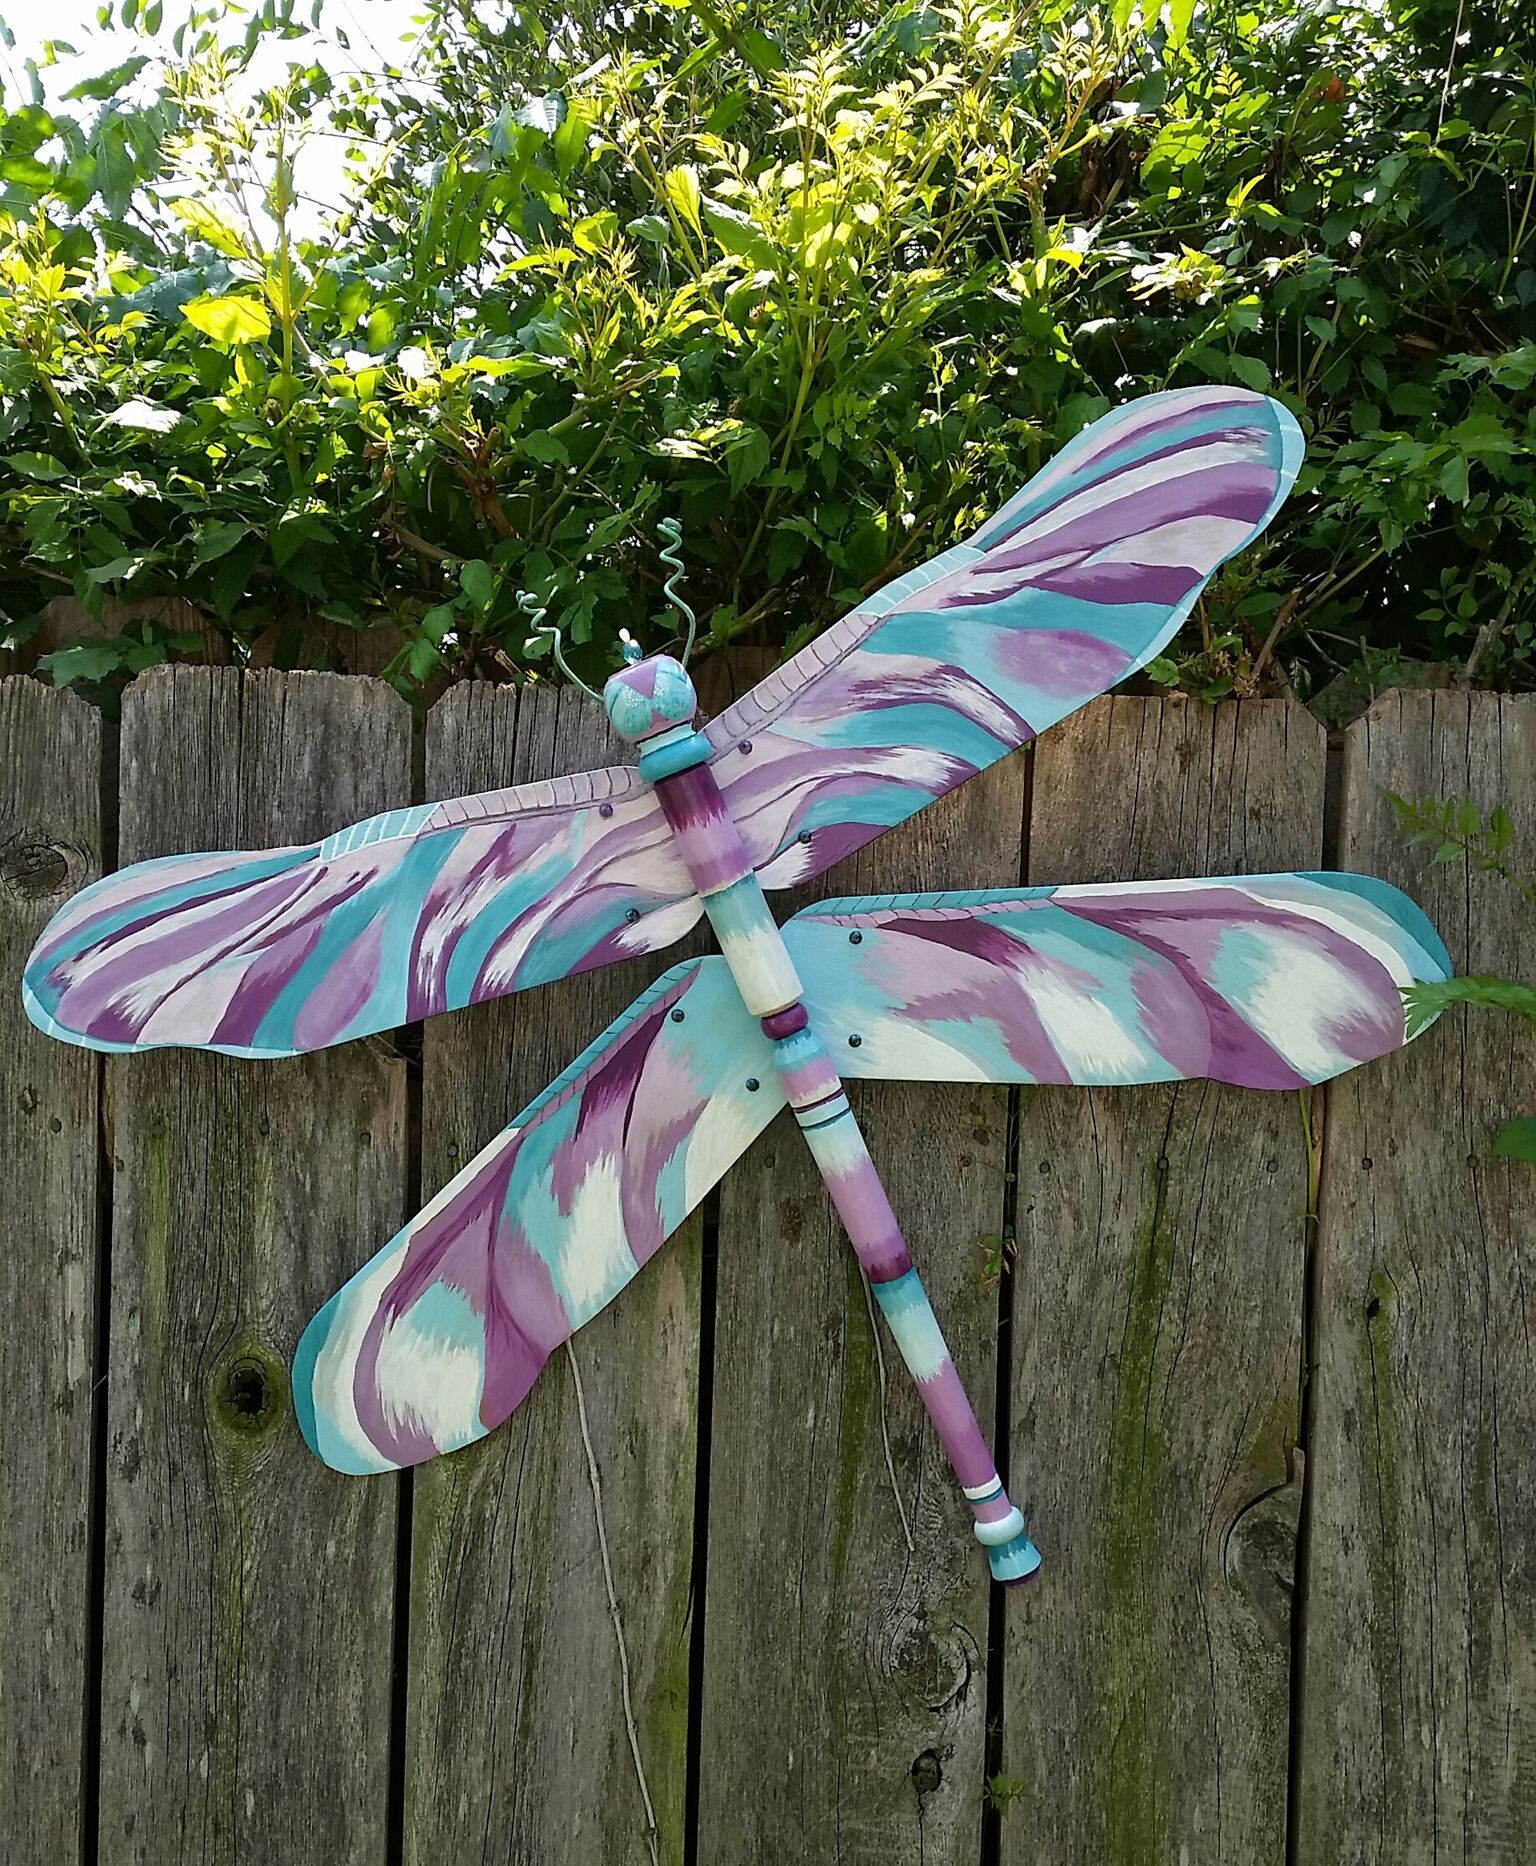 My First Fan Blade Dragonfly Sold On Etsy This Week Garden DecorDragonfly